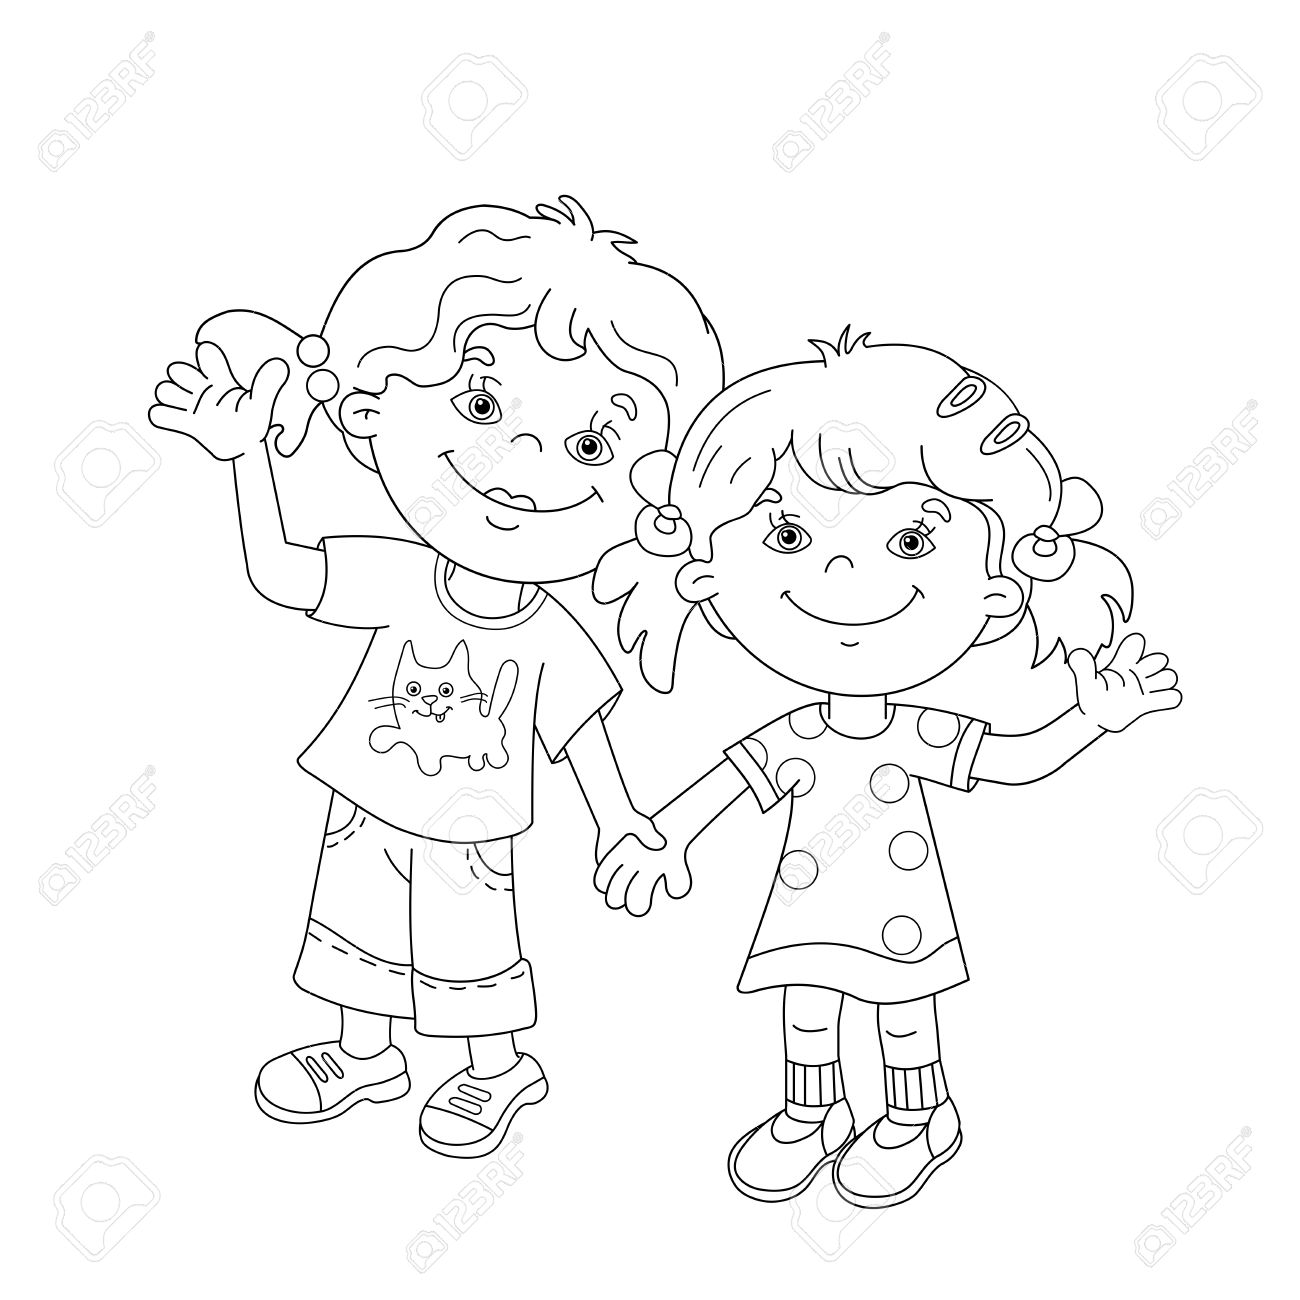 1300x1300 Coloring Page Outline Of Cartoon Girls Holding Hands. Coloring